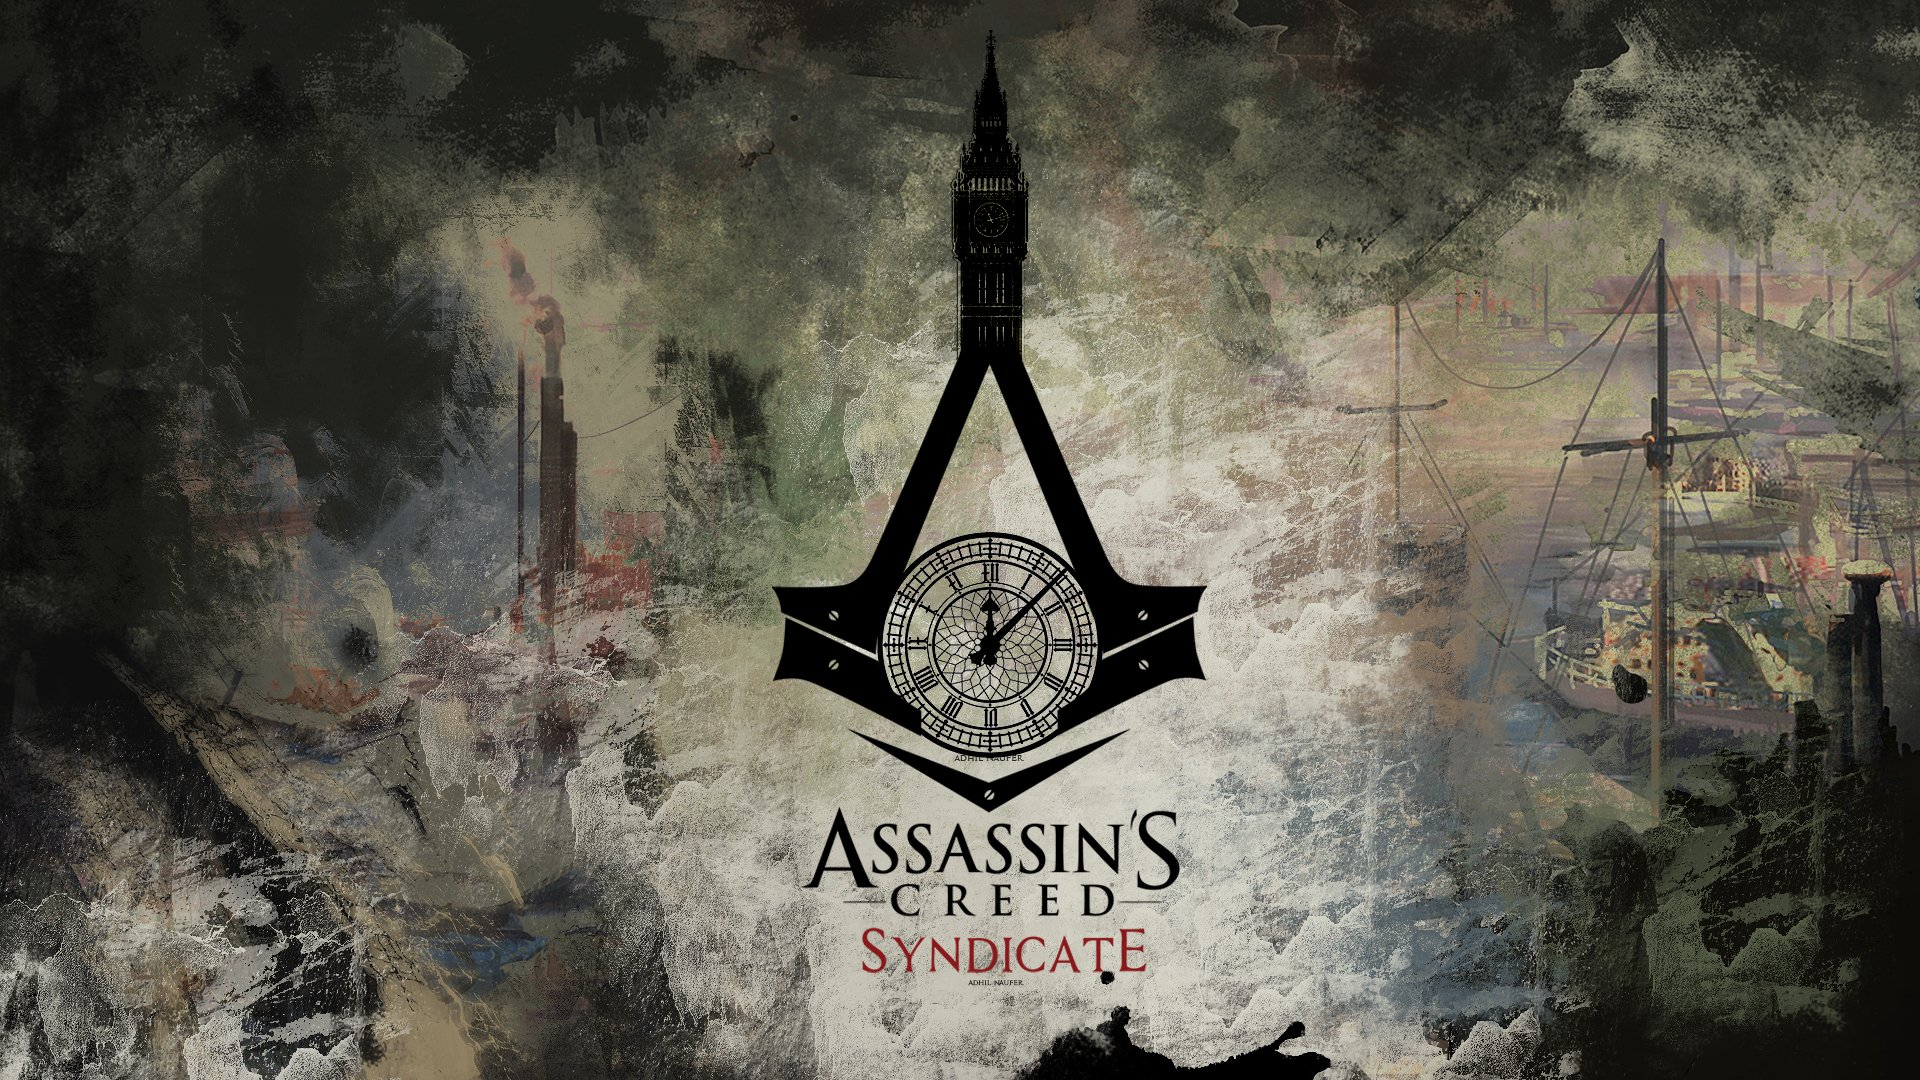 Assassins Creed Syndicate Hd Backgrounds Wallpaper Assassin S